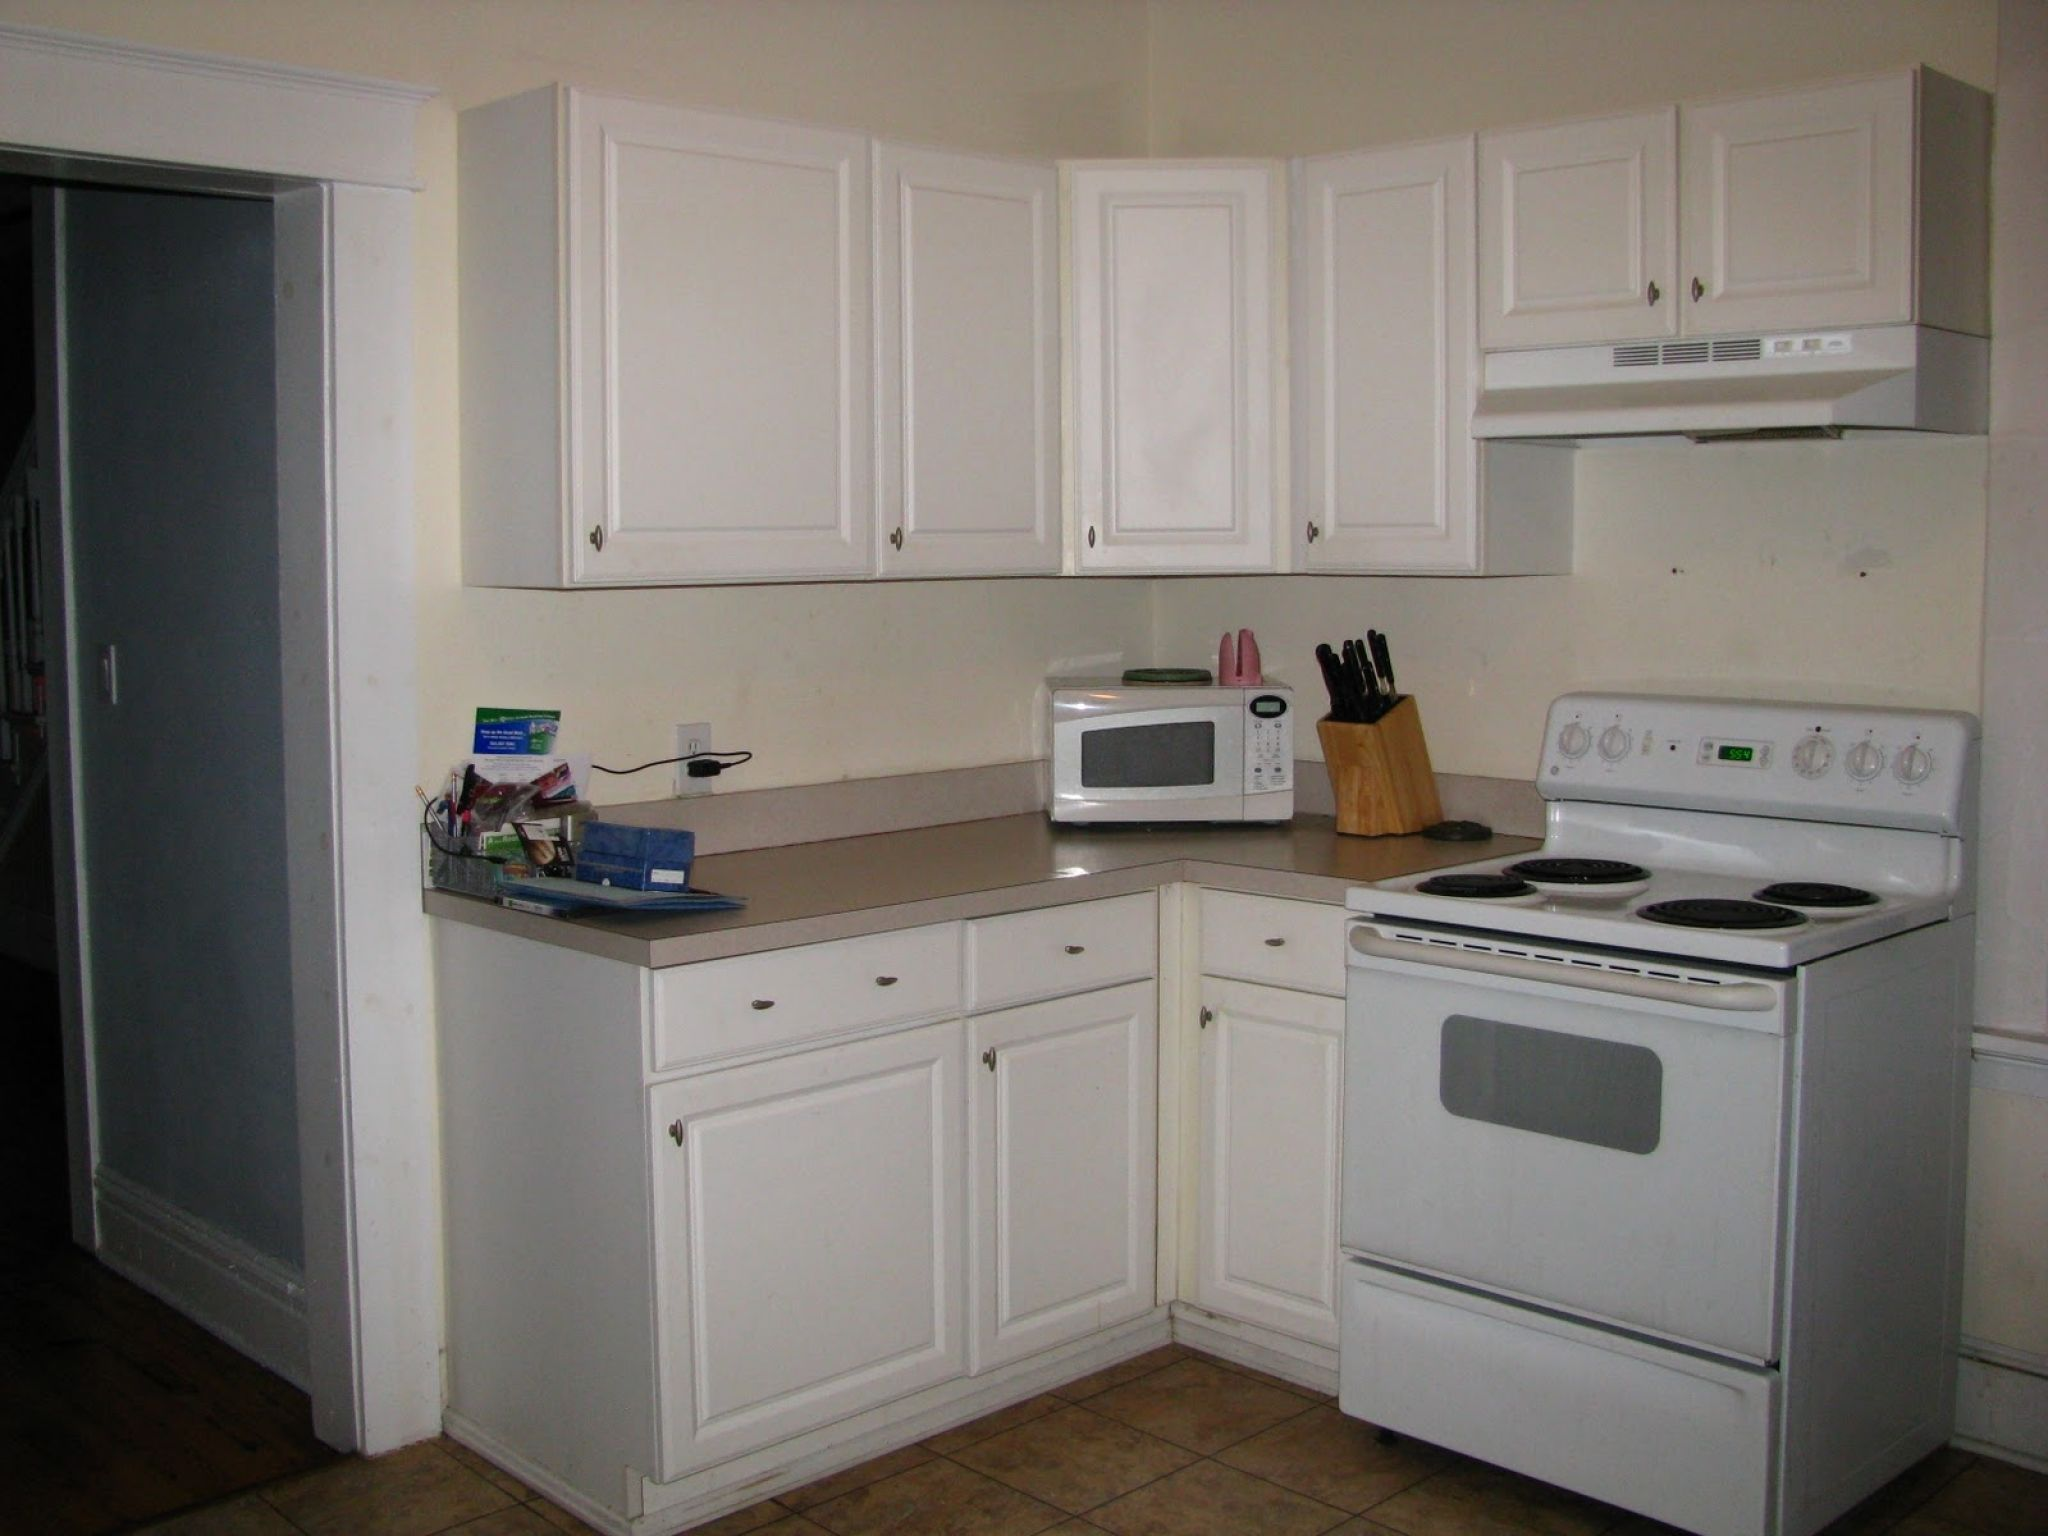 Inexpensive Kitchen Cabinet Doors   Best Kitchen Cabinet Ideas Check More  At Http://